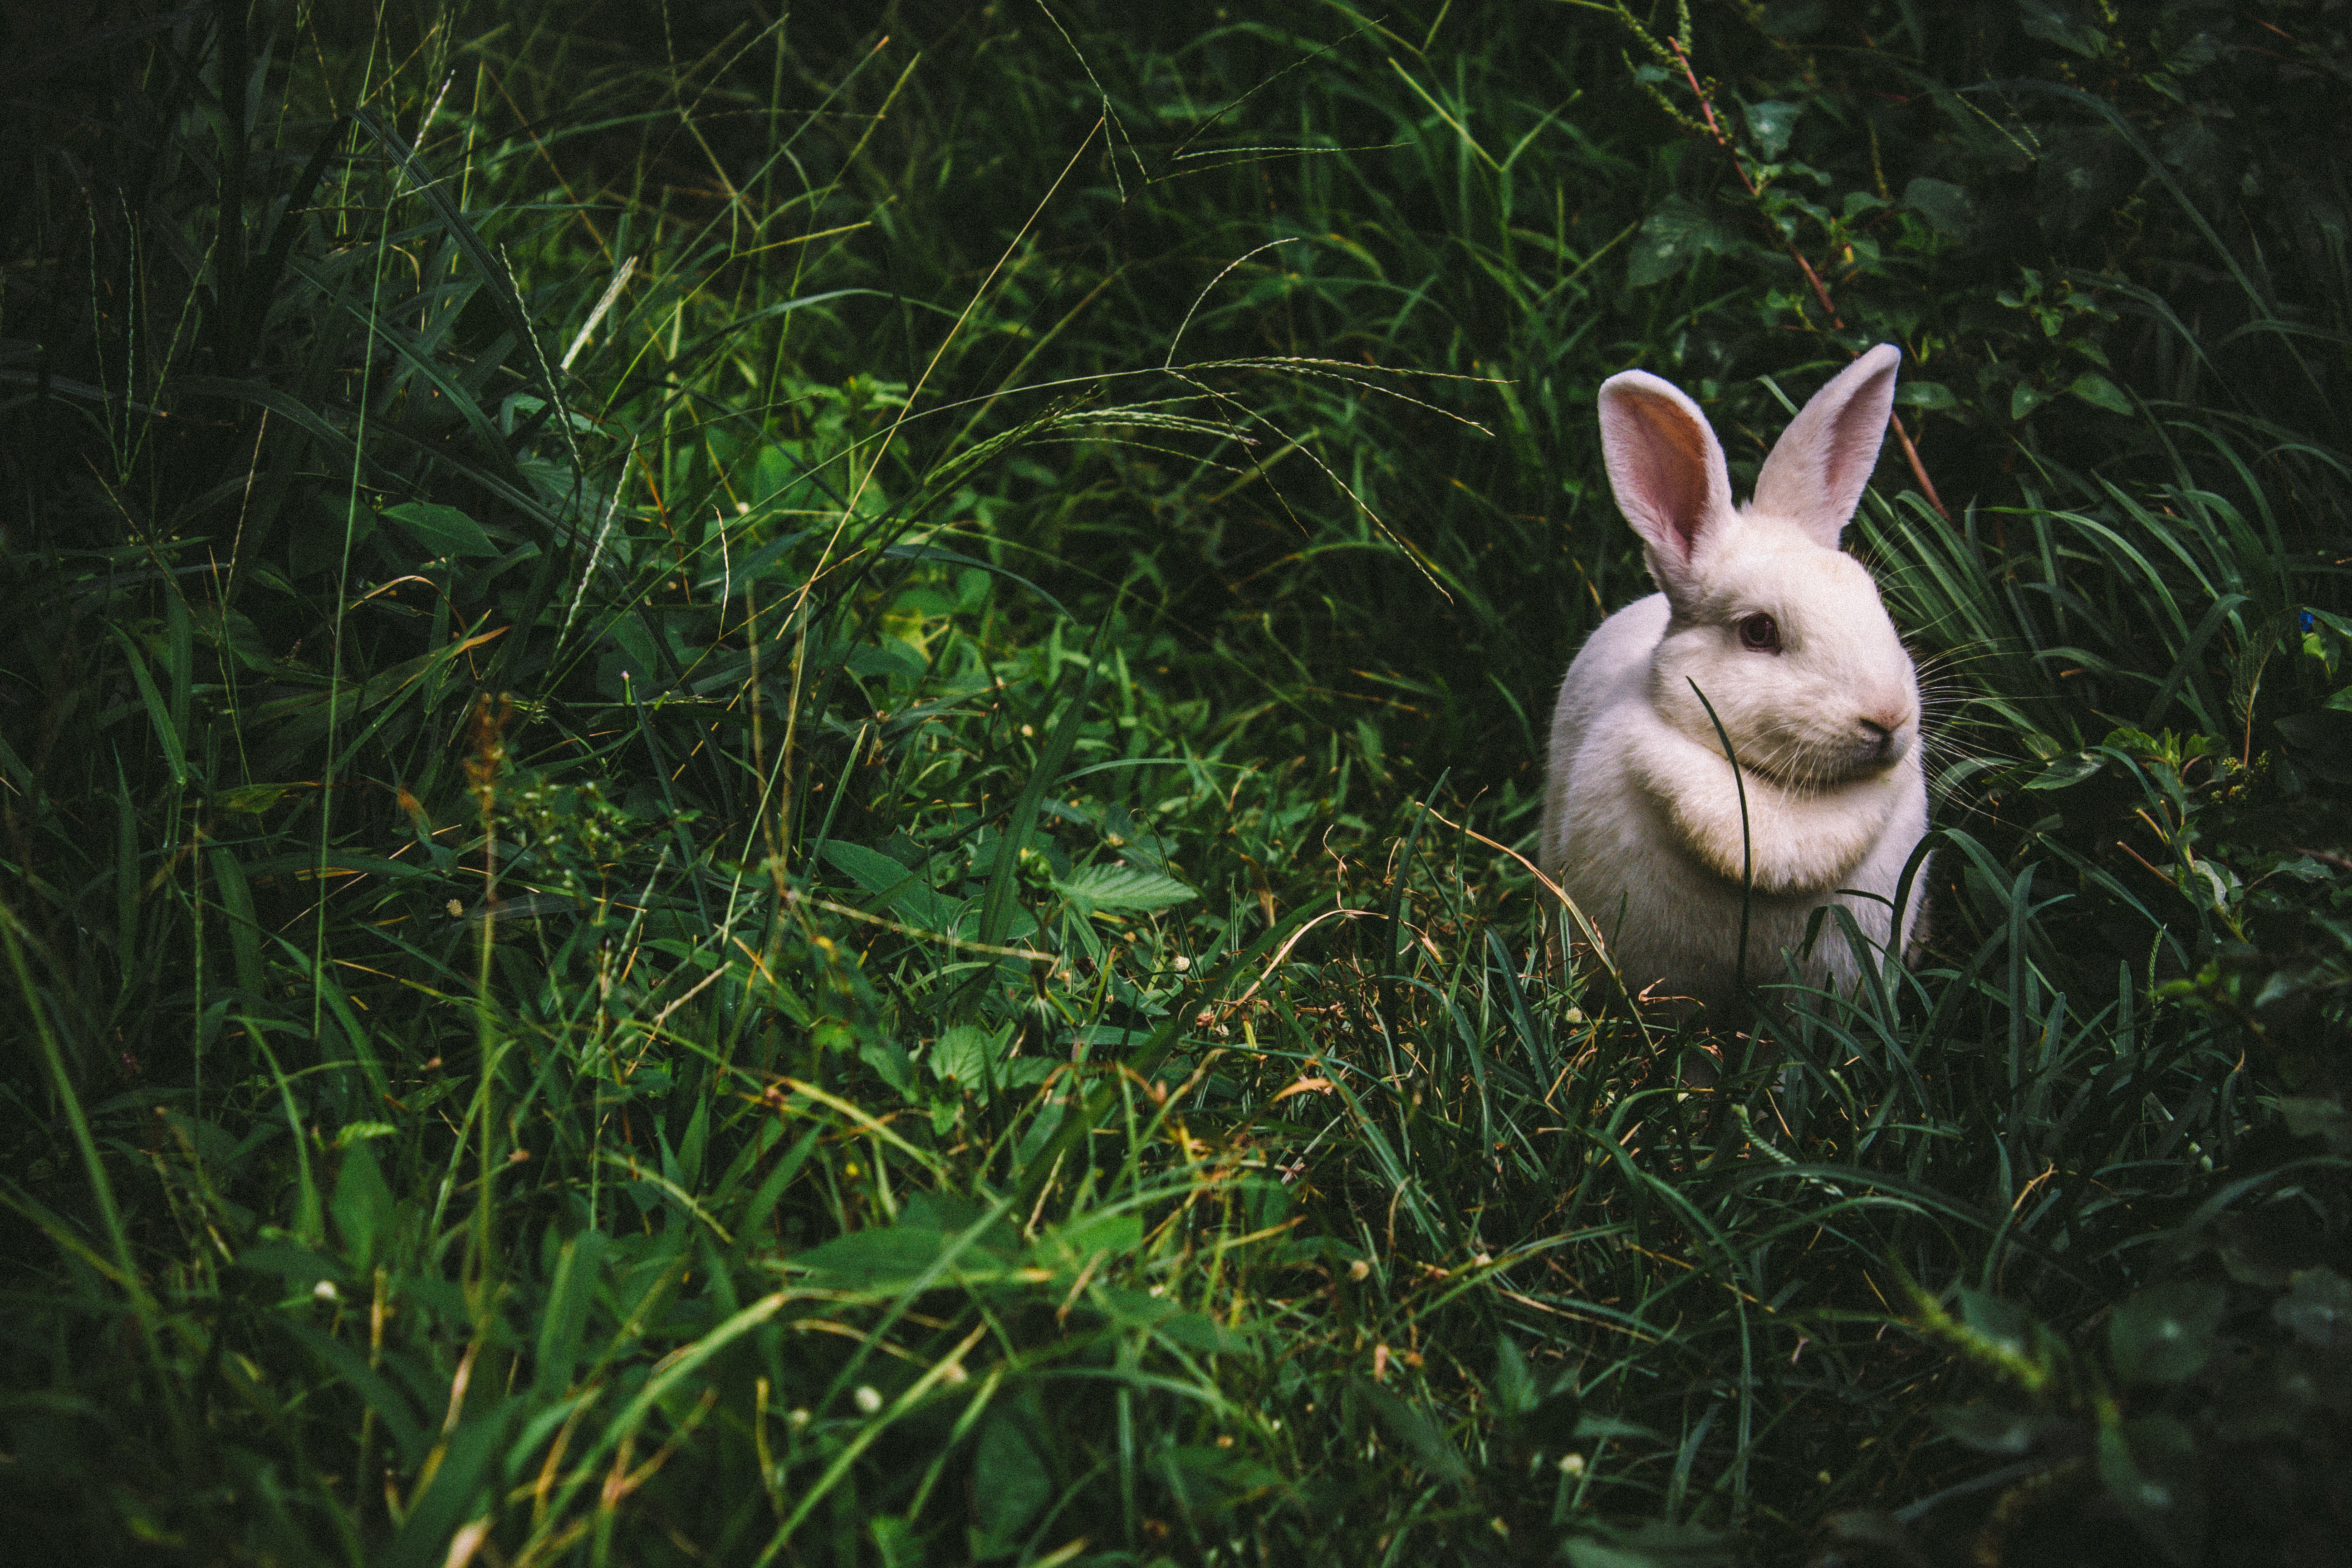 A white rabbit in the grass, Puerto Rico